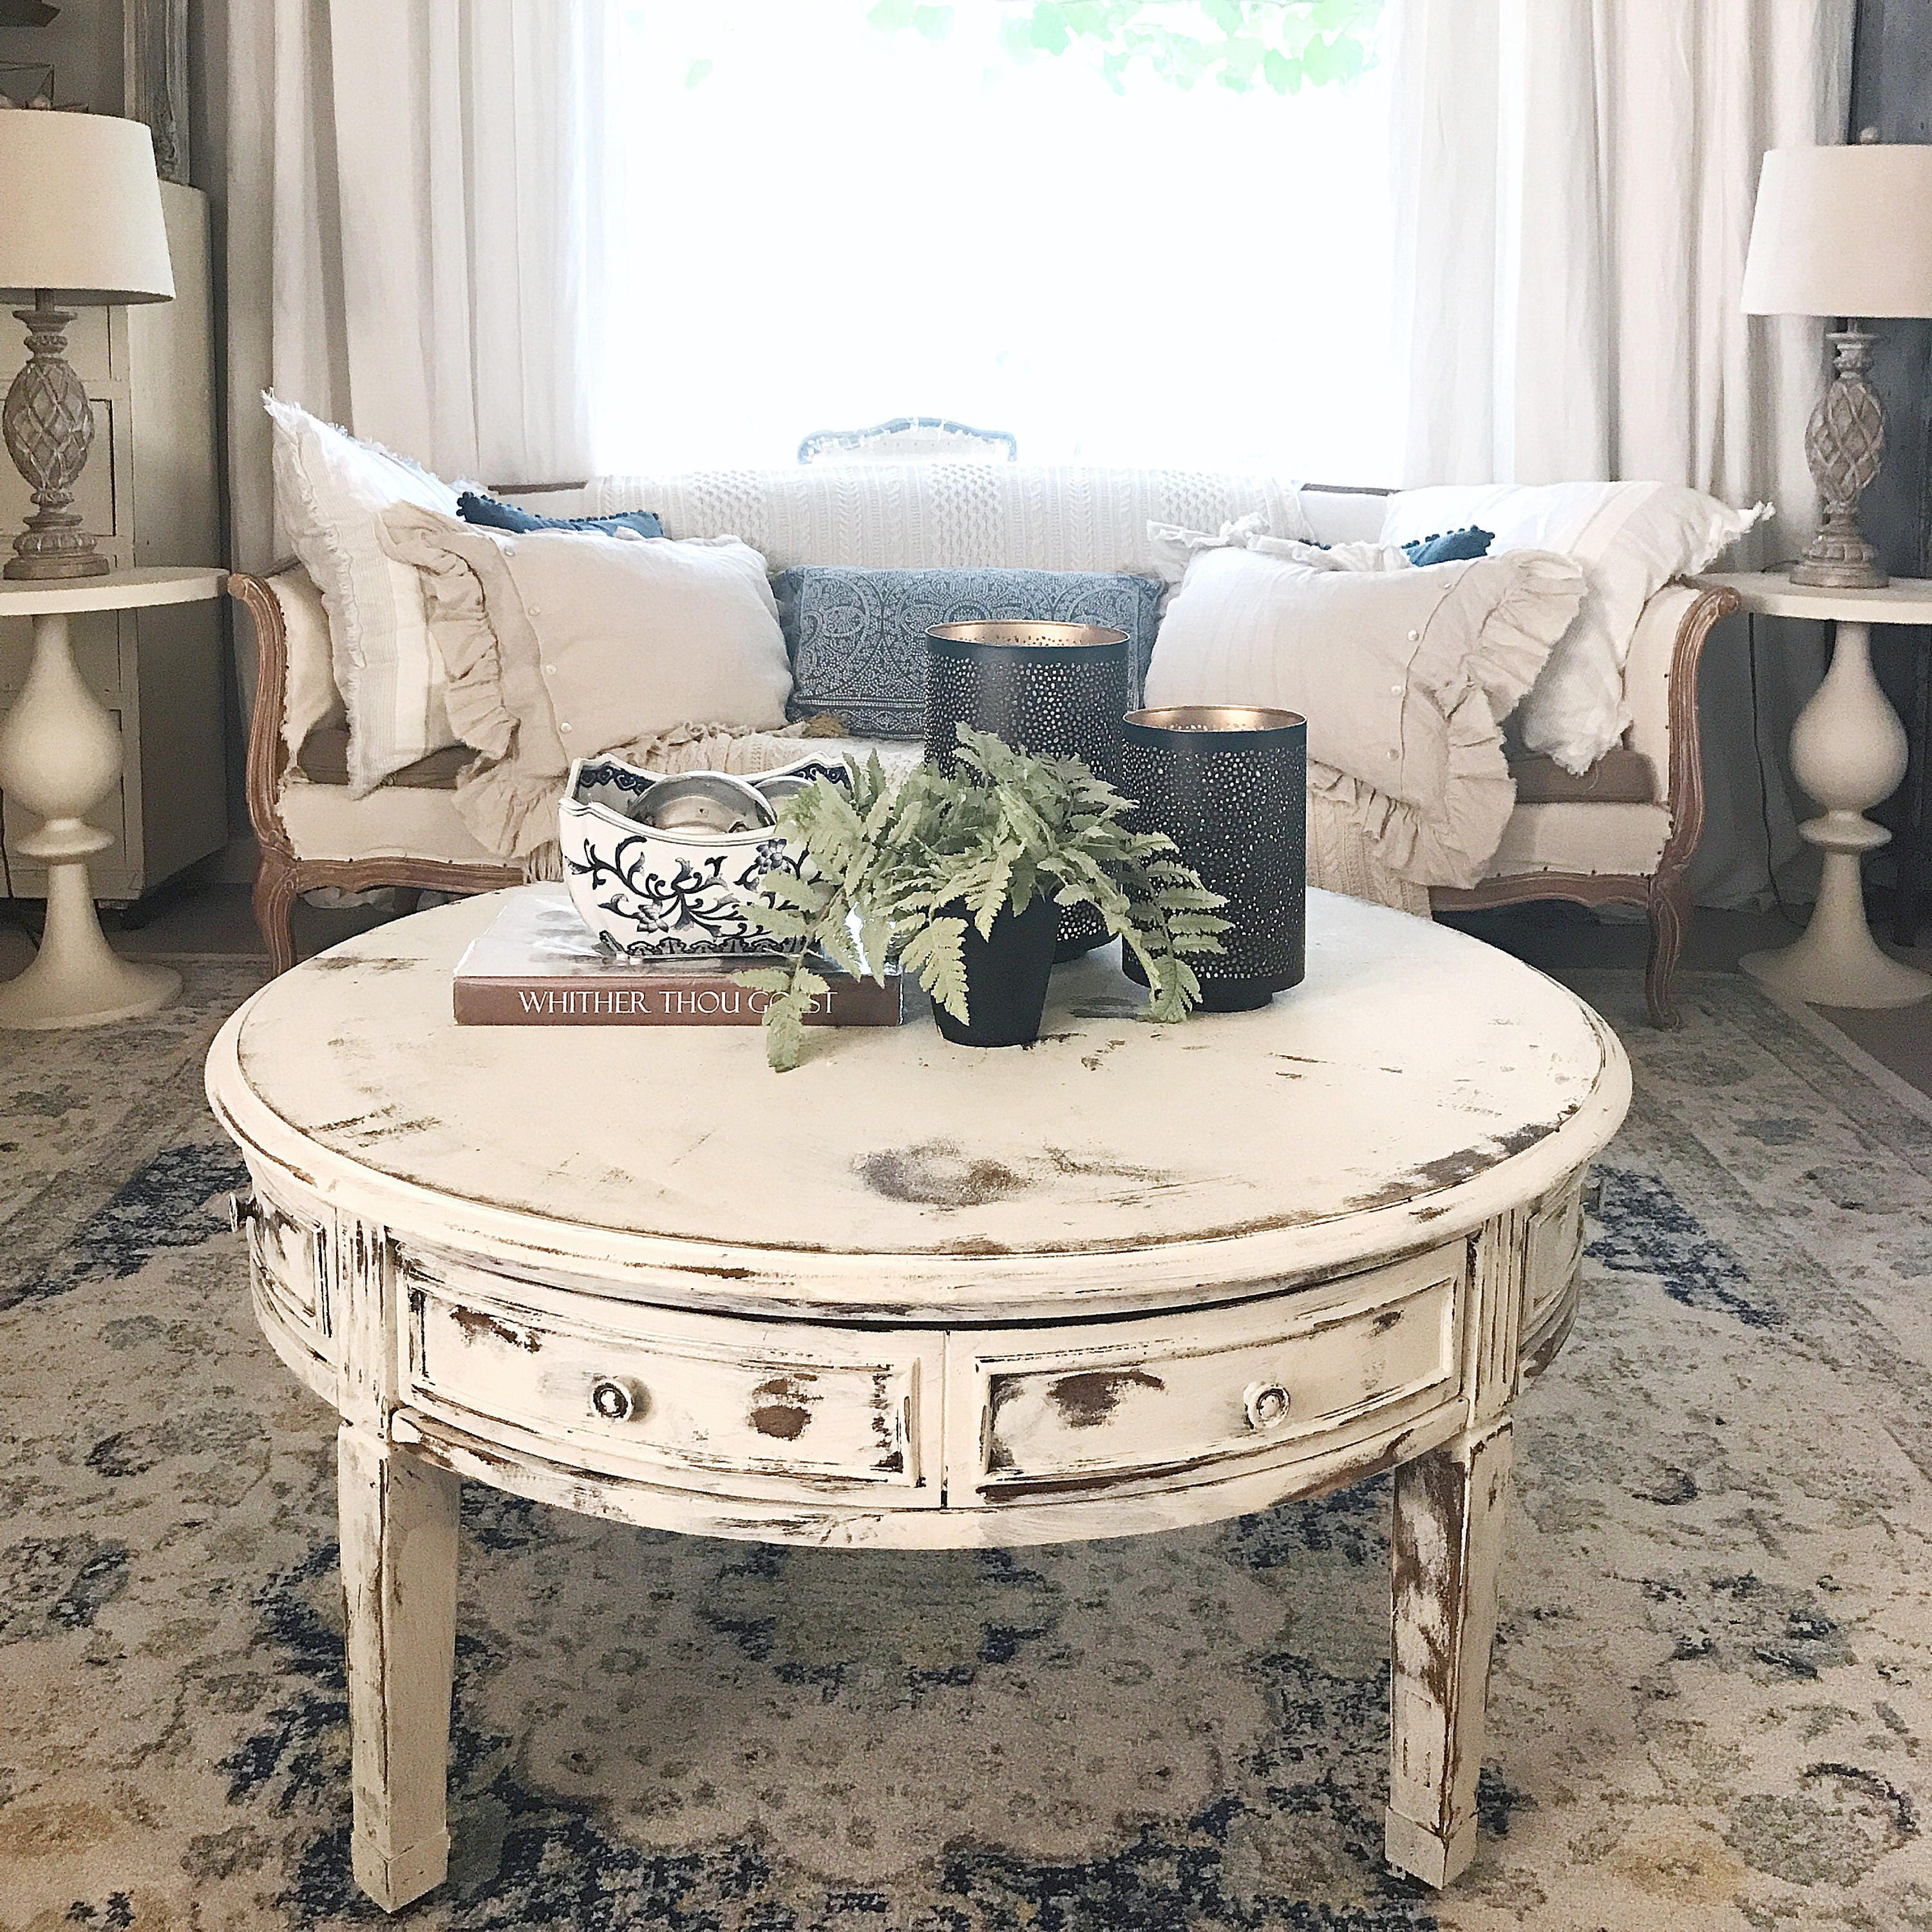 Ashley Furniture Distressed Coffee Table: Coffee Table White Distressed Round Living Room Table